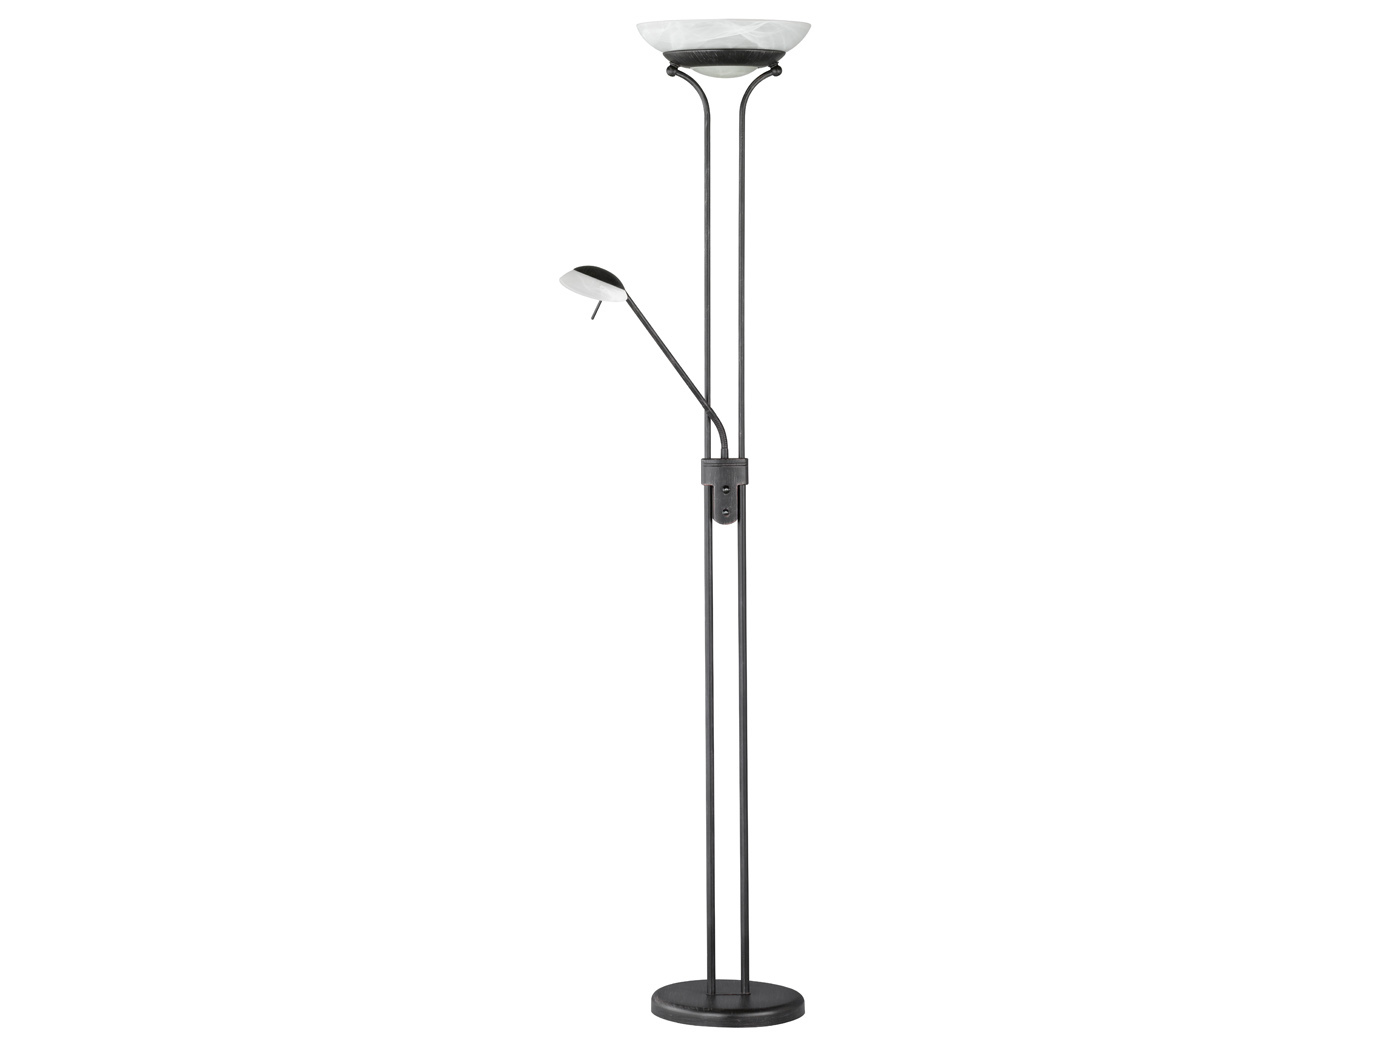 Standleuchte Dimmbar Led Stehlampe Mit Leselampe Rostfarbig H 182cm Dimmbar Wohnzimmerlampen Diele